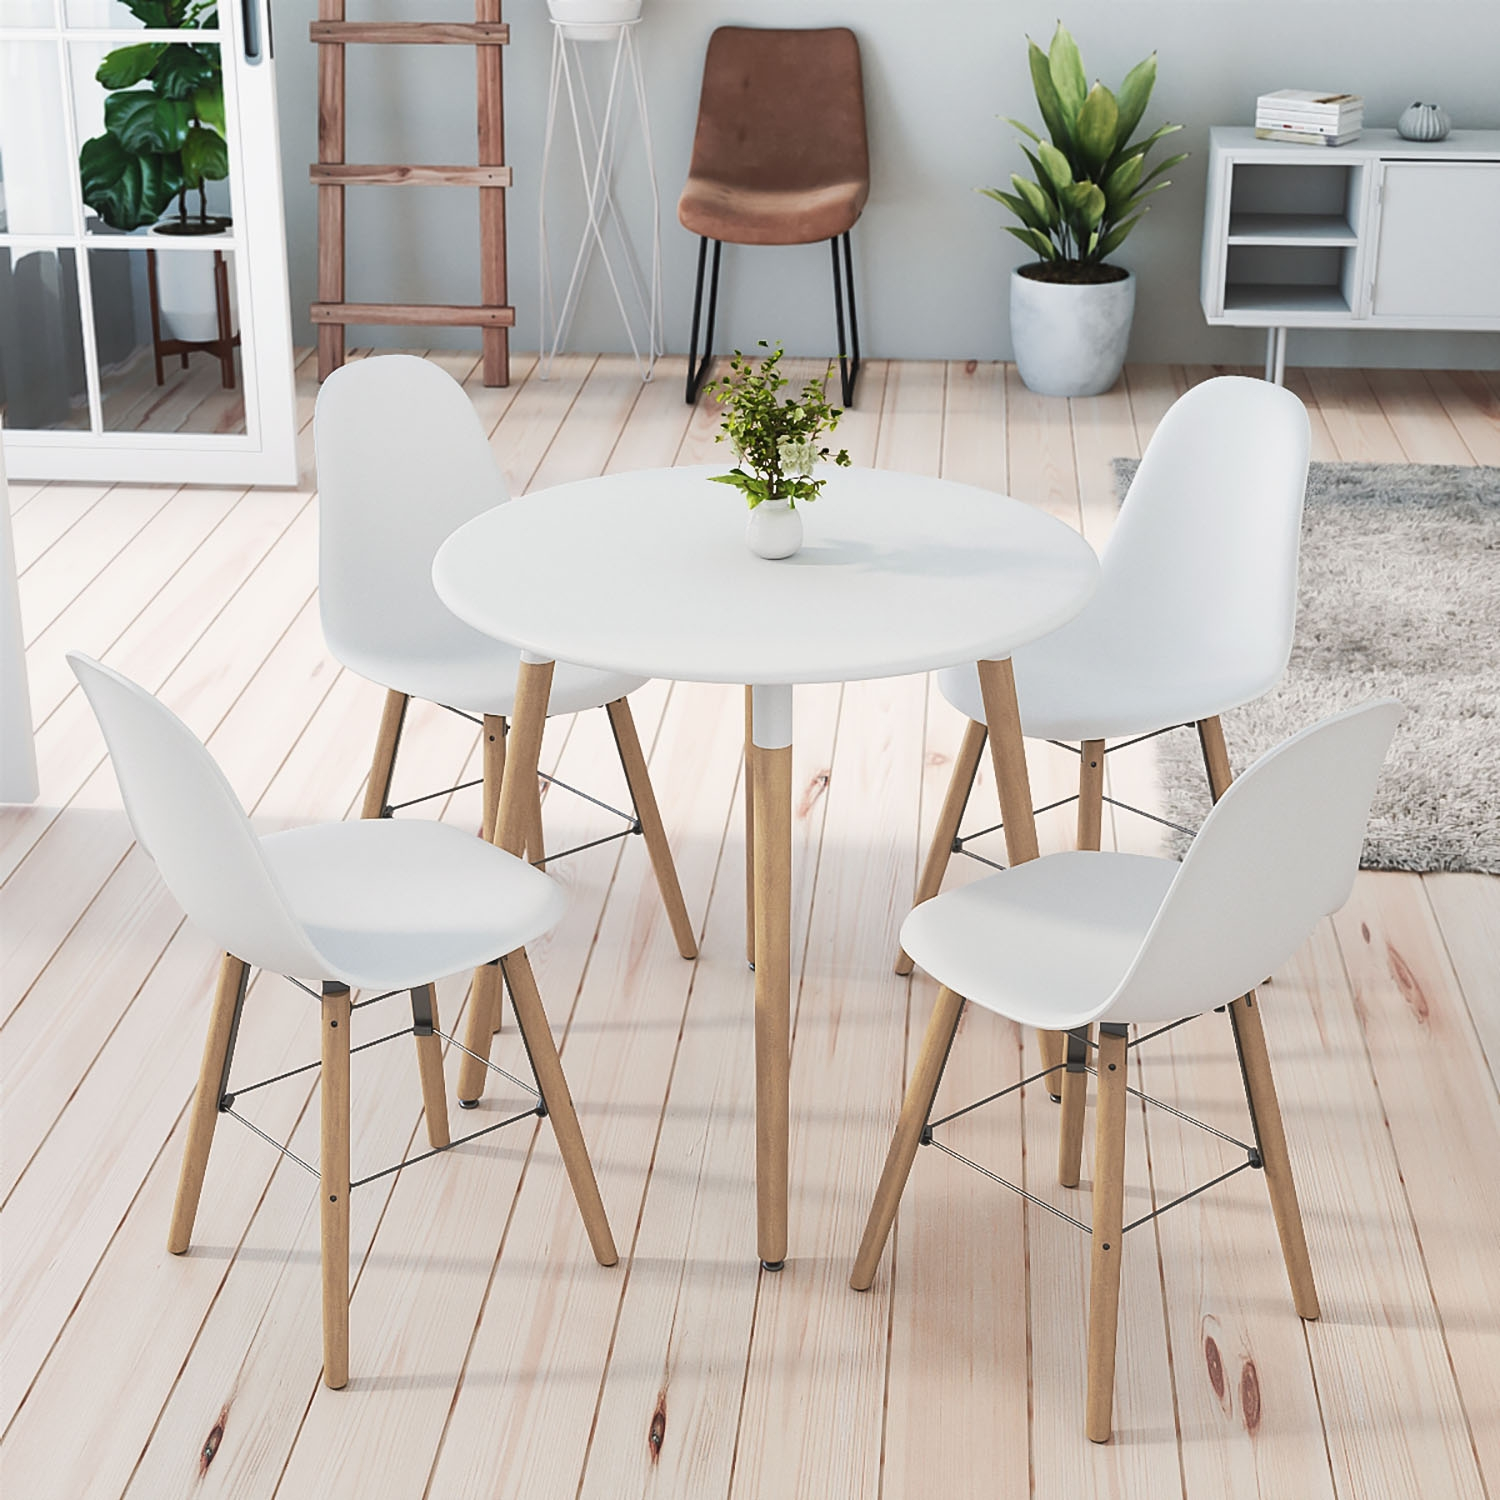 ensemble table ronde rimma 4 chaises blanches scandinaves